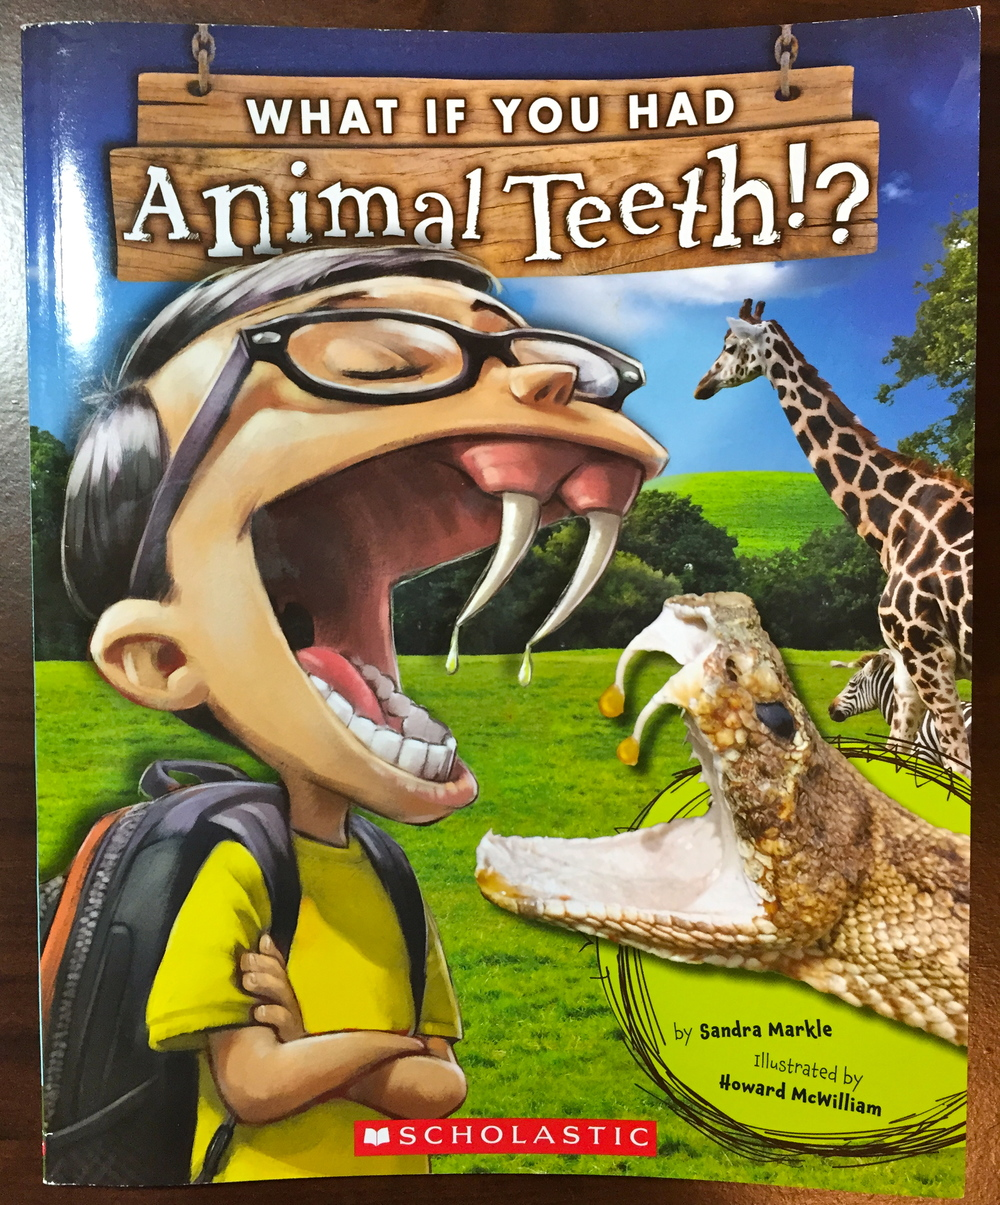 http://www.thousandoaksfamilydentistry.com/blog/2014/12/13/dental-library-review-what-if-you-had-animal-teeth#.VIy17WTF_9s=